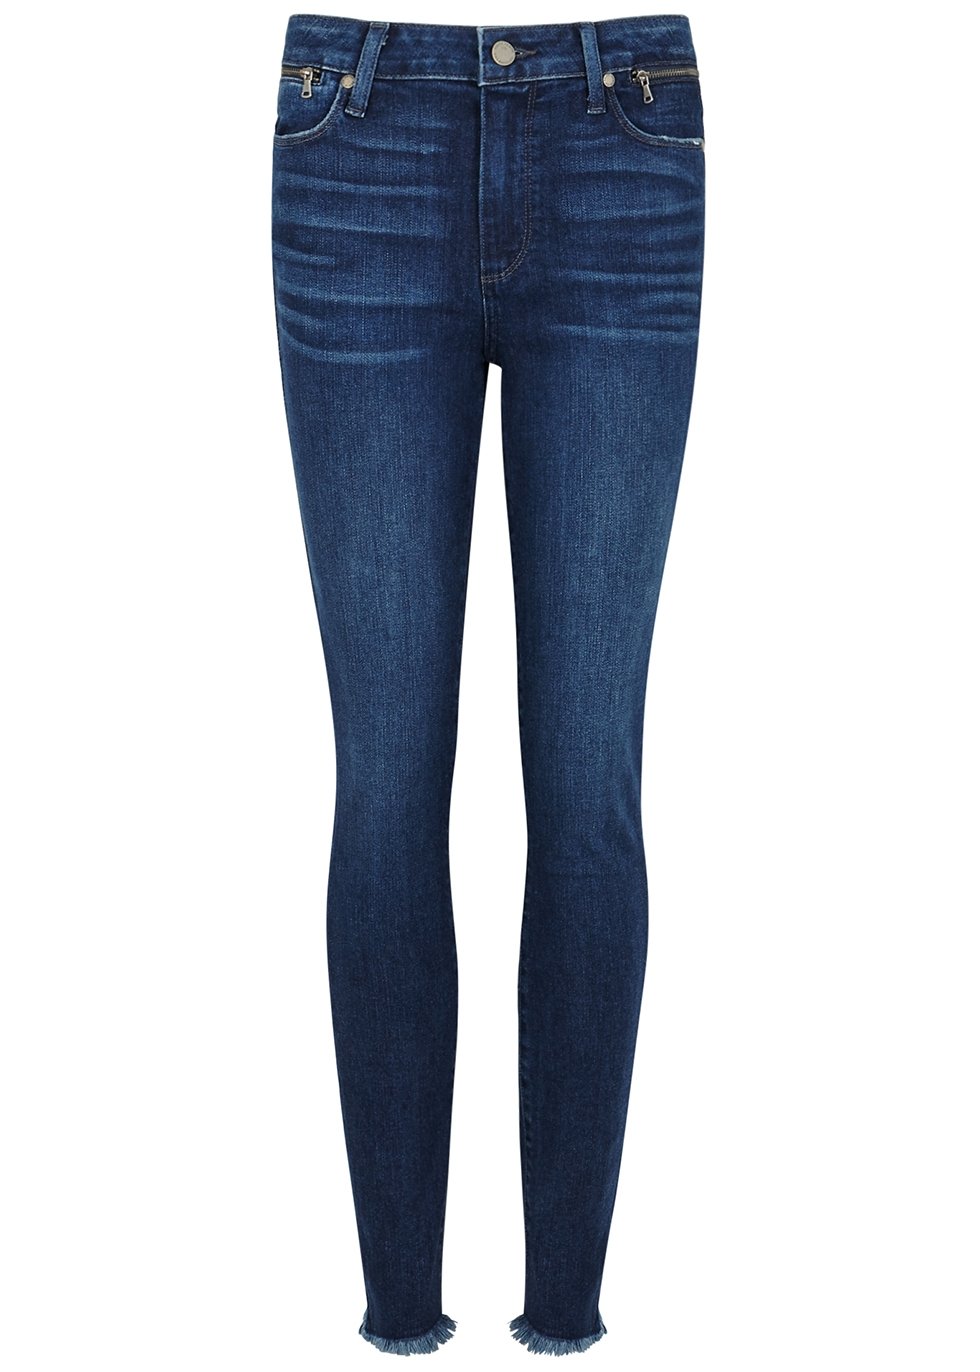 Hoxton blue skinny jeans